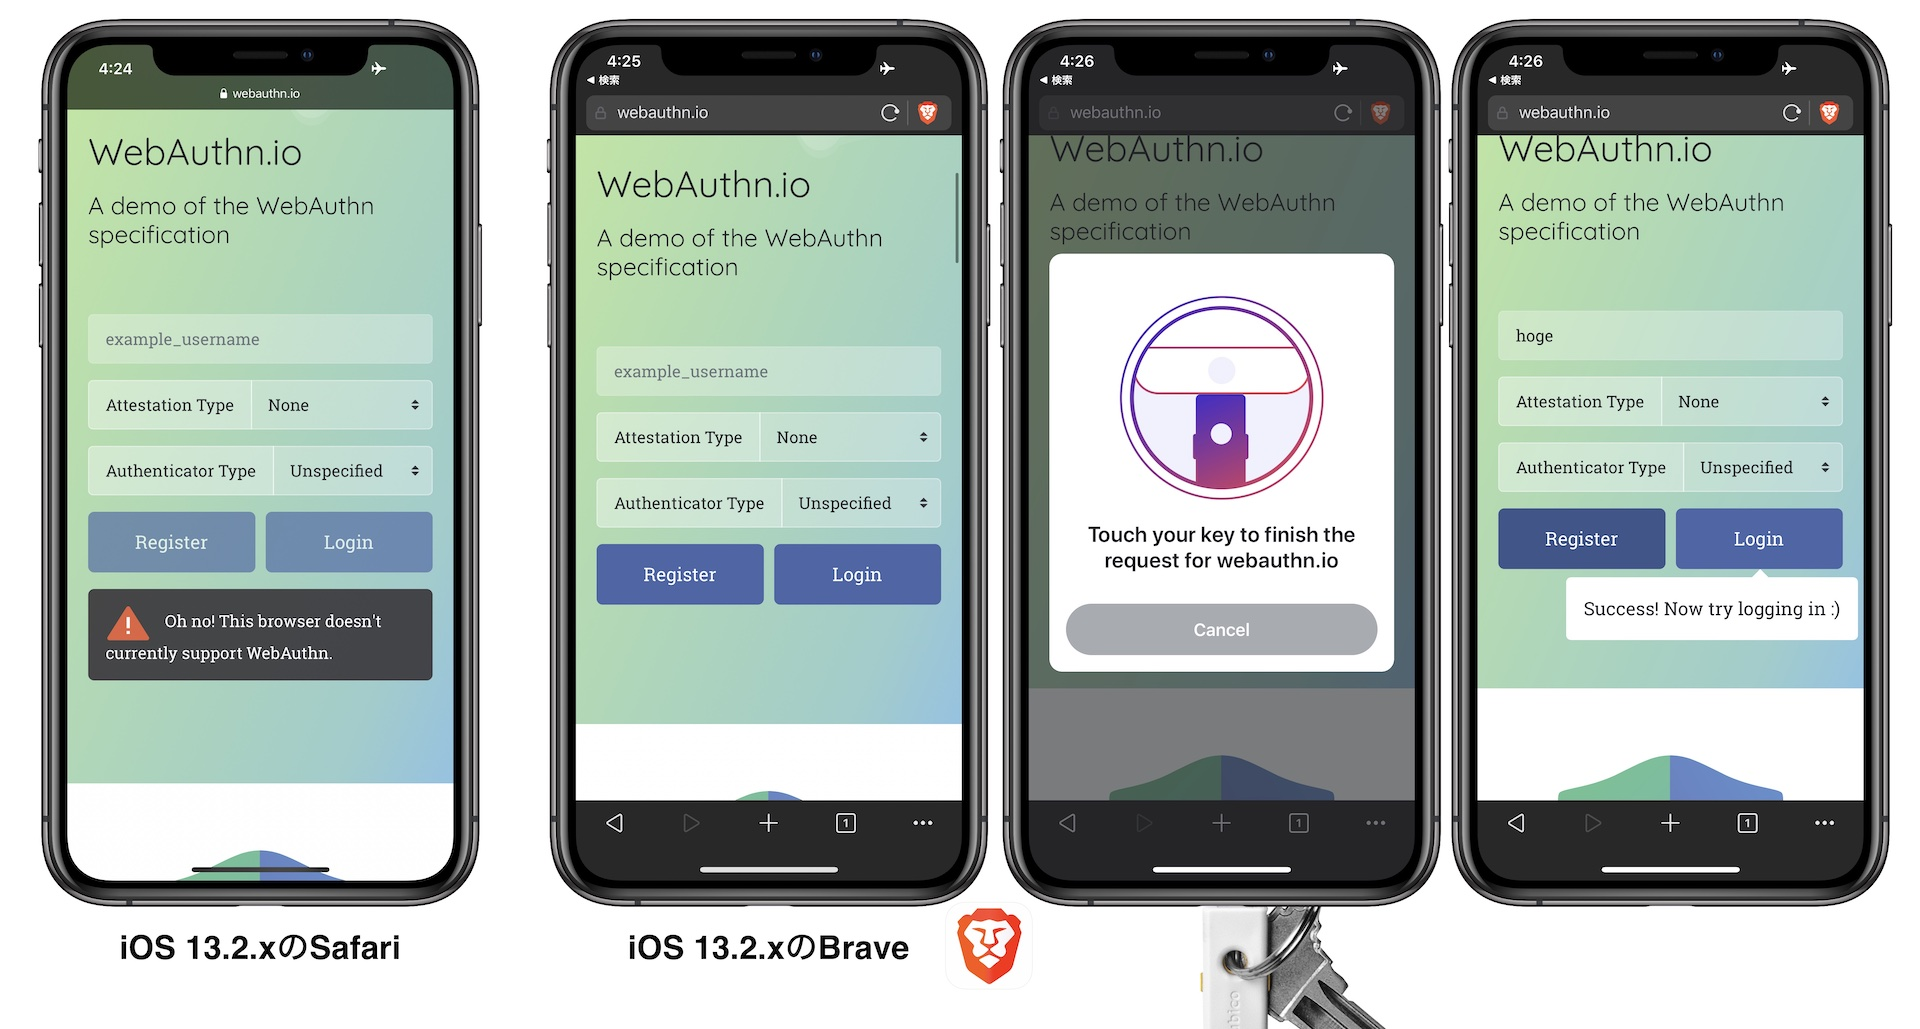 iOS 13.3 support U2F/FIDO2/WebAuthn